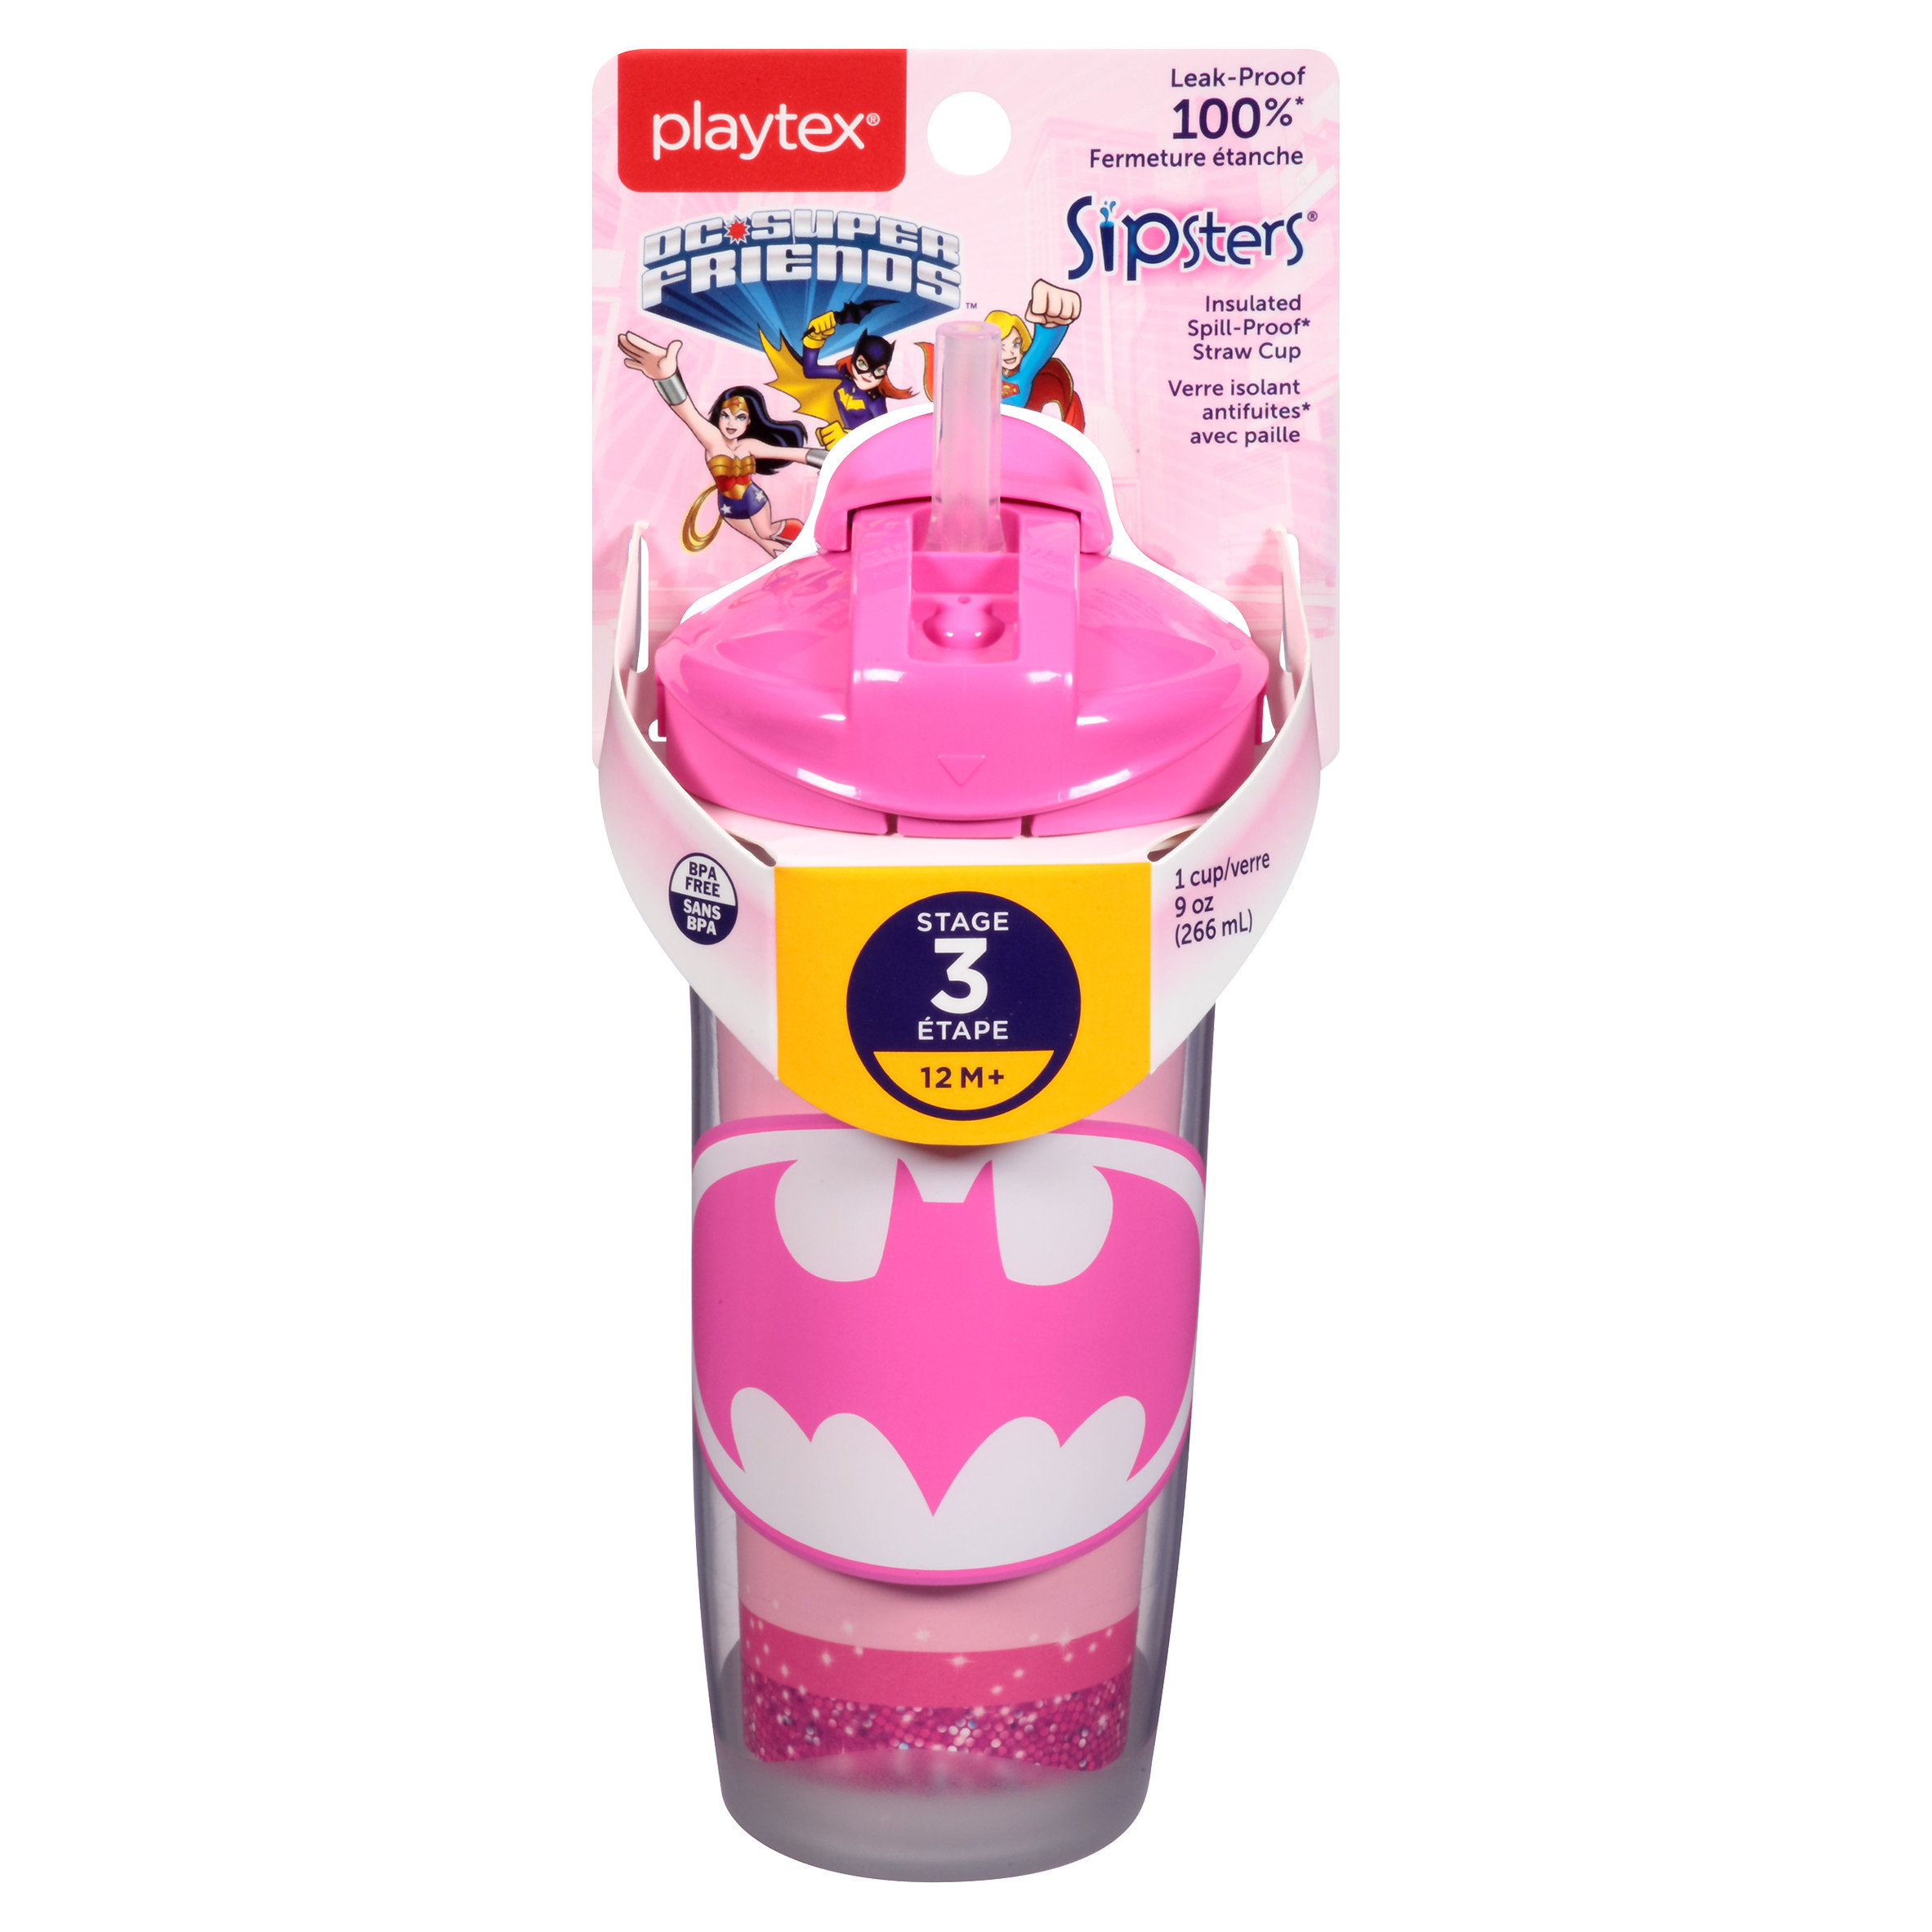 Playtex Sipsters DC Super Friends Stage 3 Insulated Straw Sippy Cup 9oz 1-Pack Assorted Patterns